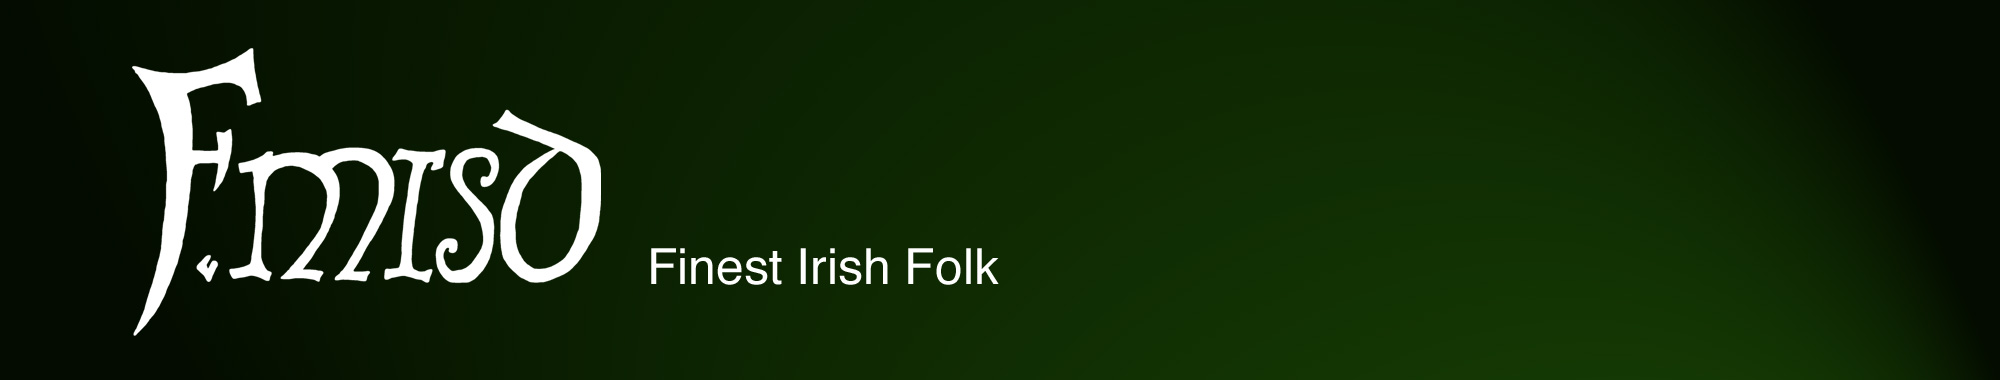 Fmisd – Finest Irish Folk